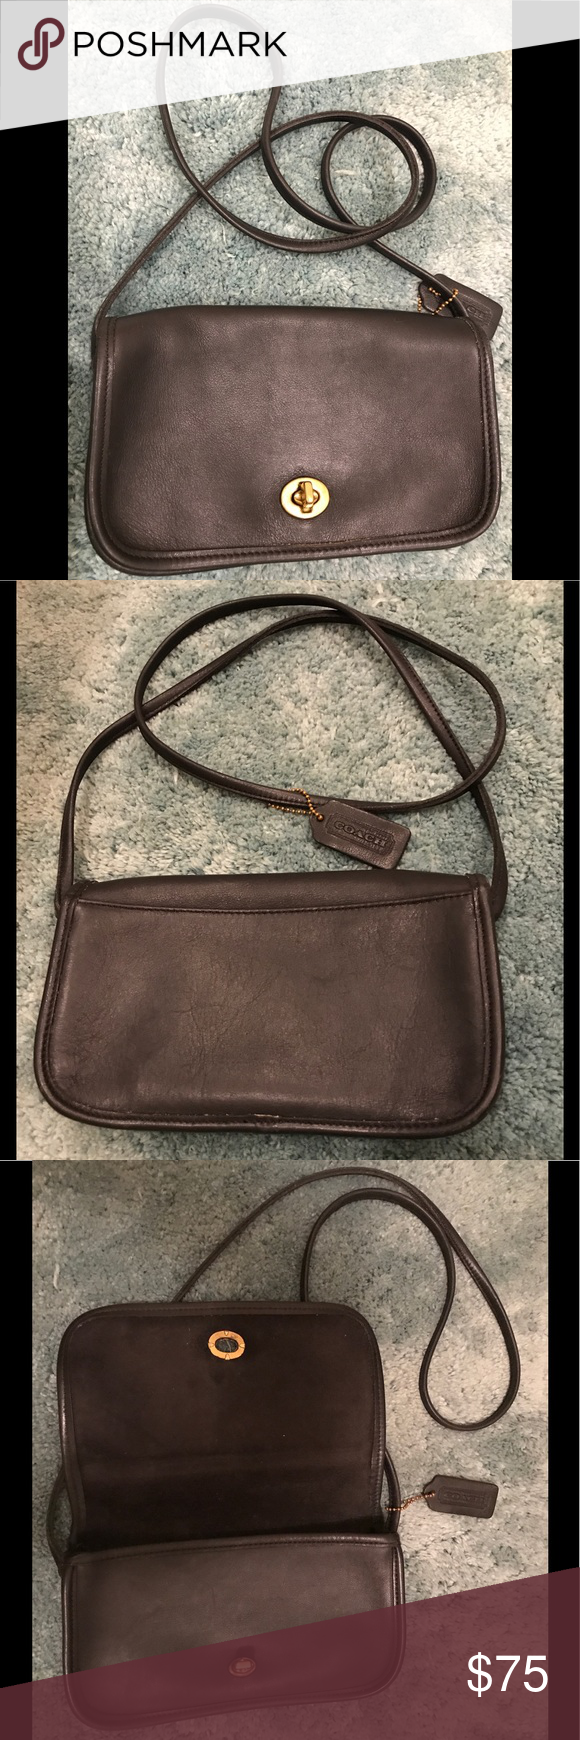 """Coach Vintage 80s leather crossbody bag Beautiful leather from the 80s, very light and soft. W9""""-H5""""-D1"""", strap drop about 20"""".  Small size but can hold essential items (phone,lipsticks and keys). Very good used condition for this aged bag. Much love for the Coach vintage bag 💕. Coach Bags Crossbody Bags"""